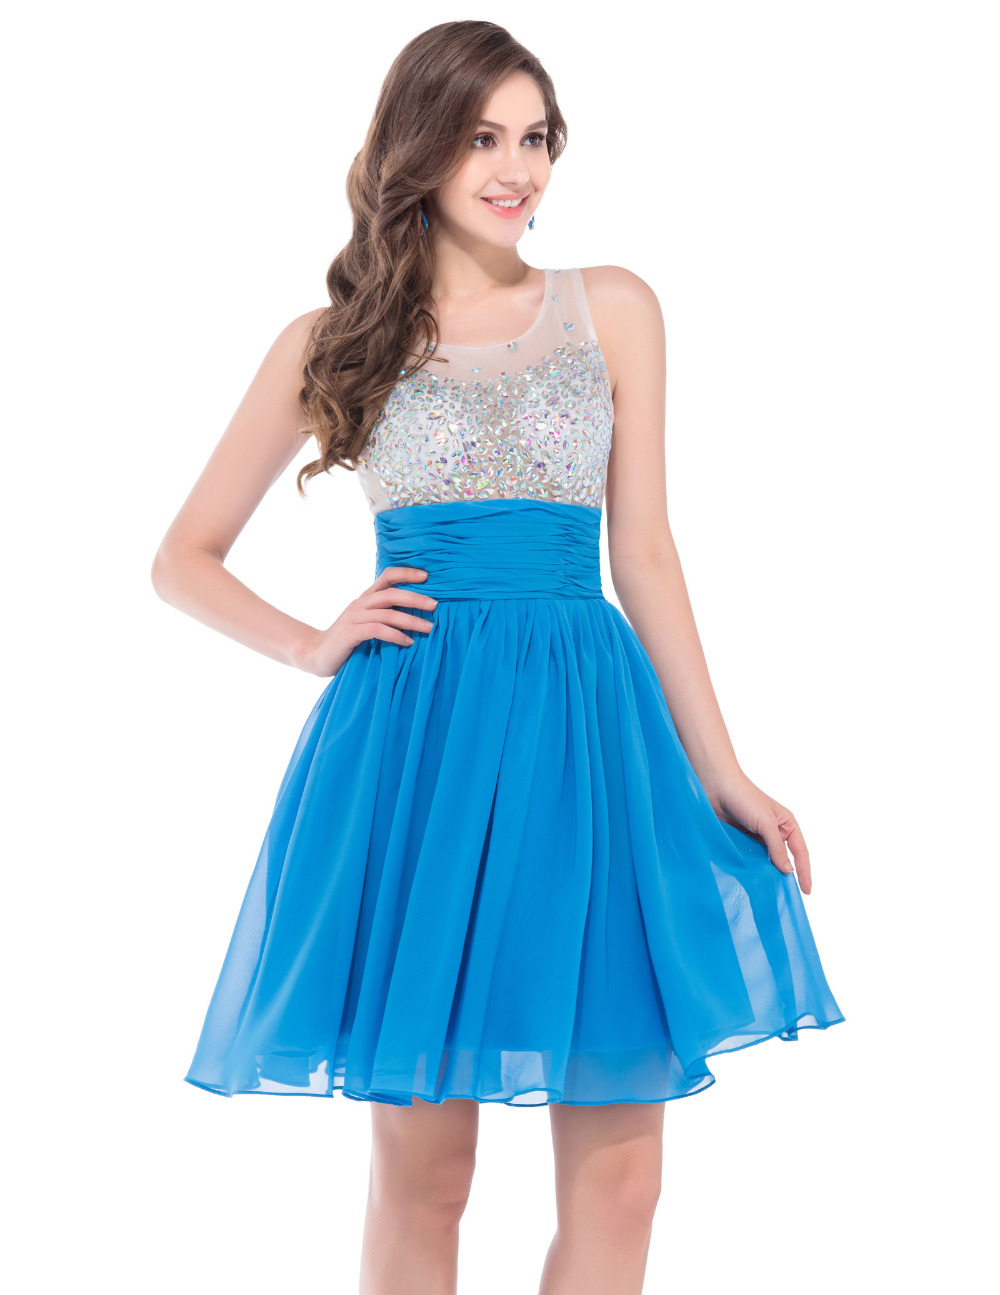 Short Homecoming Dresses 2010 Promotion-Shop for Promotional Short ...